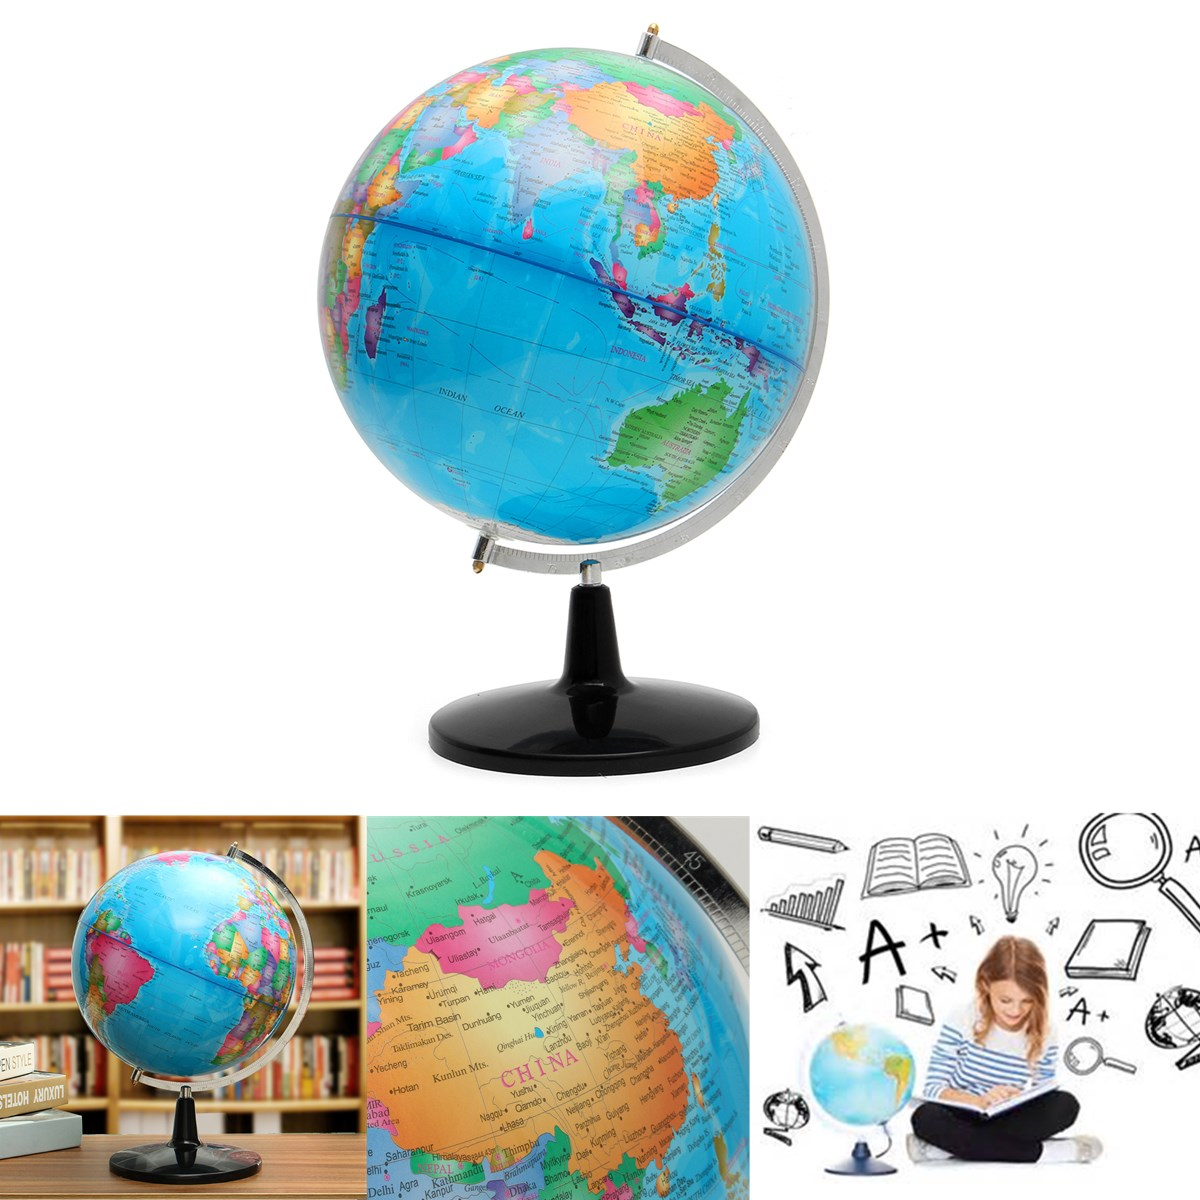 World Globe Rotating Map Earth Atlas Geography Diameter 32 cm Sturdy Base